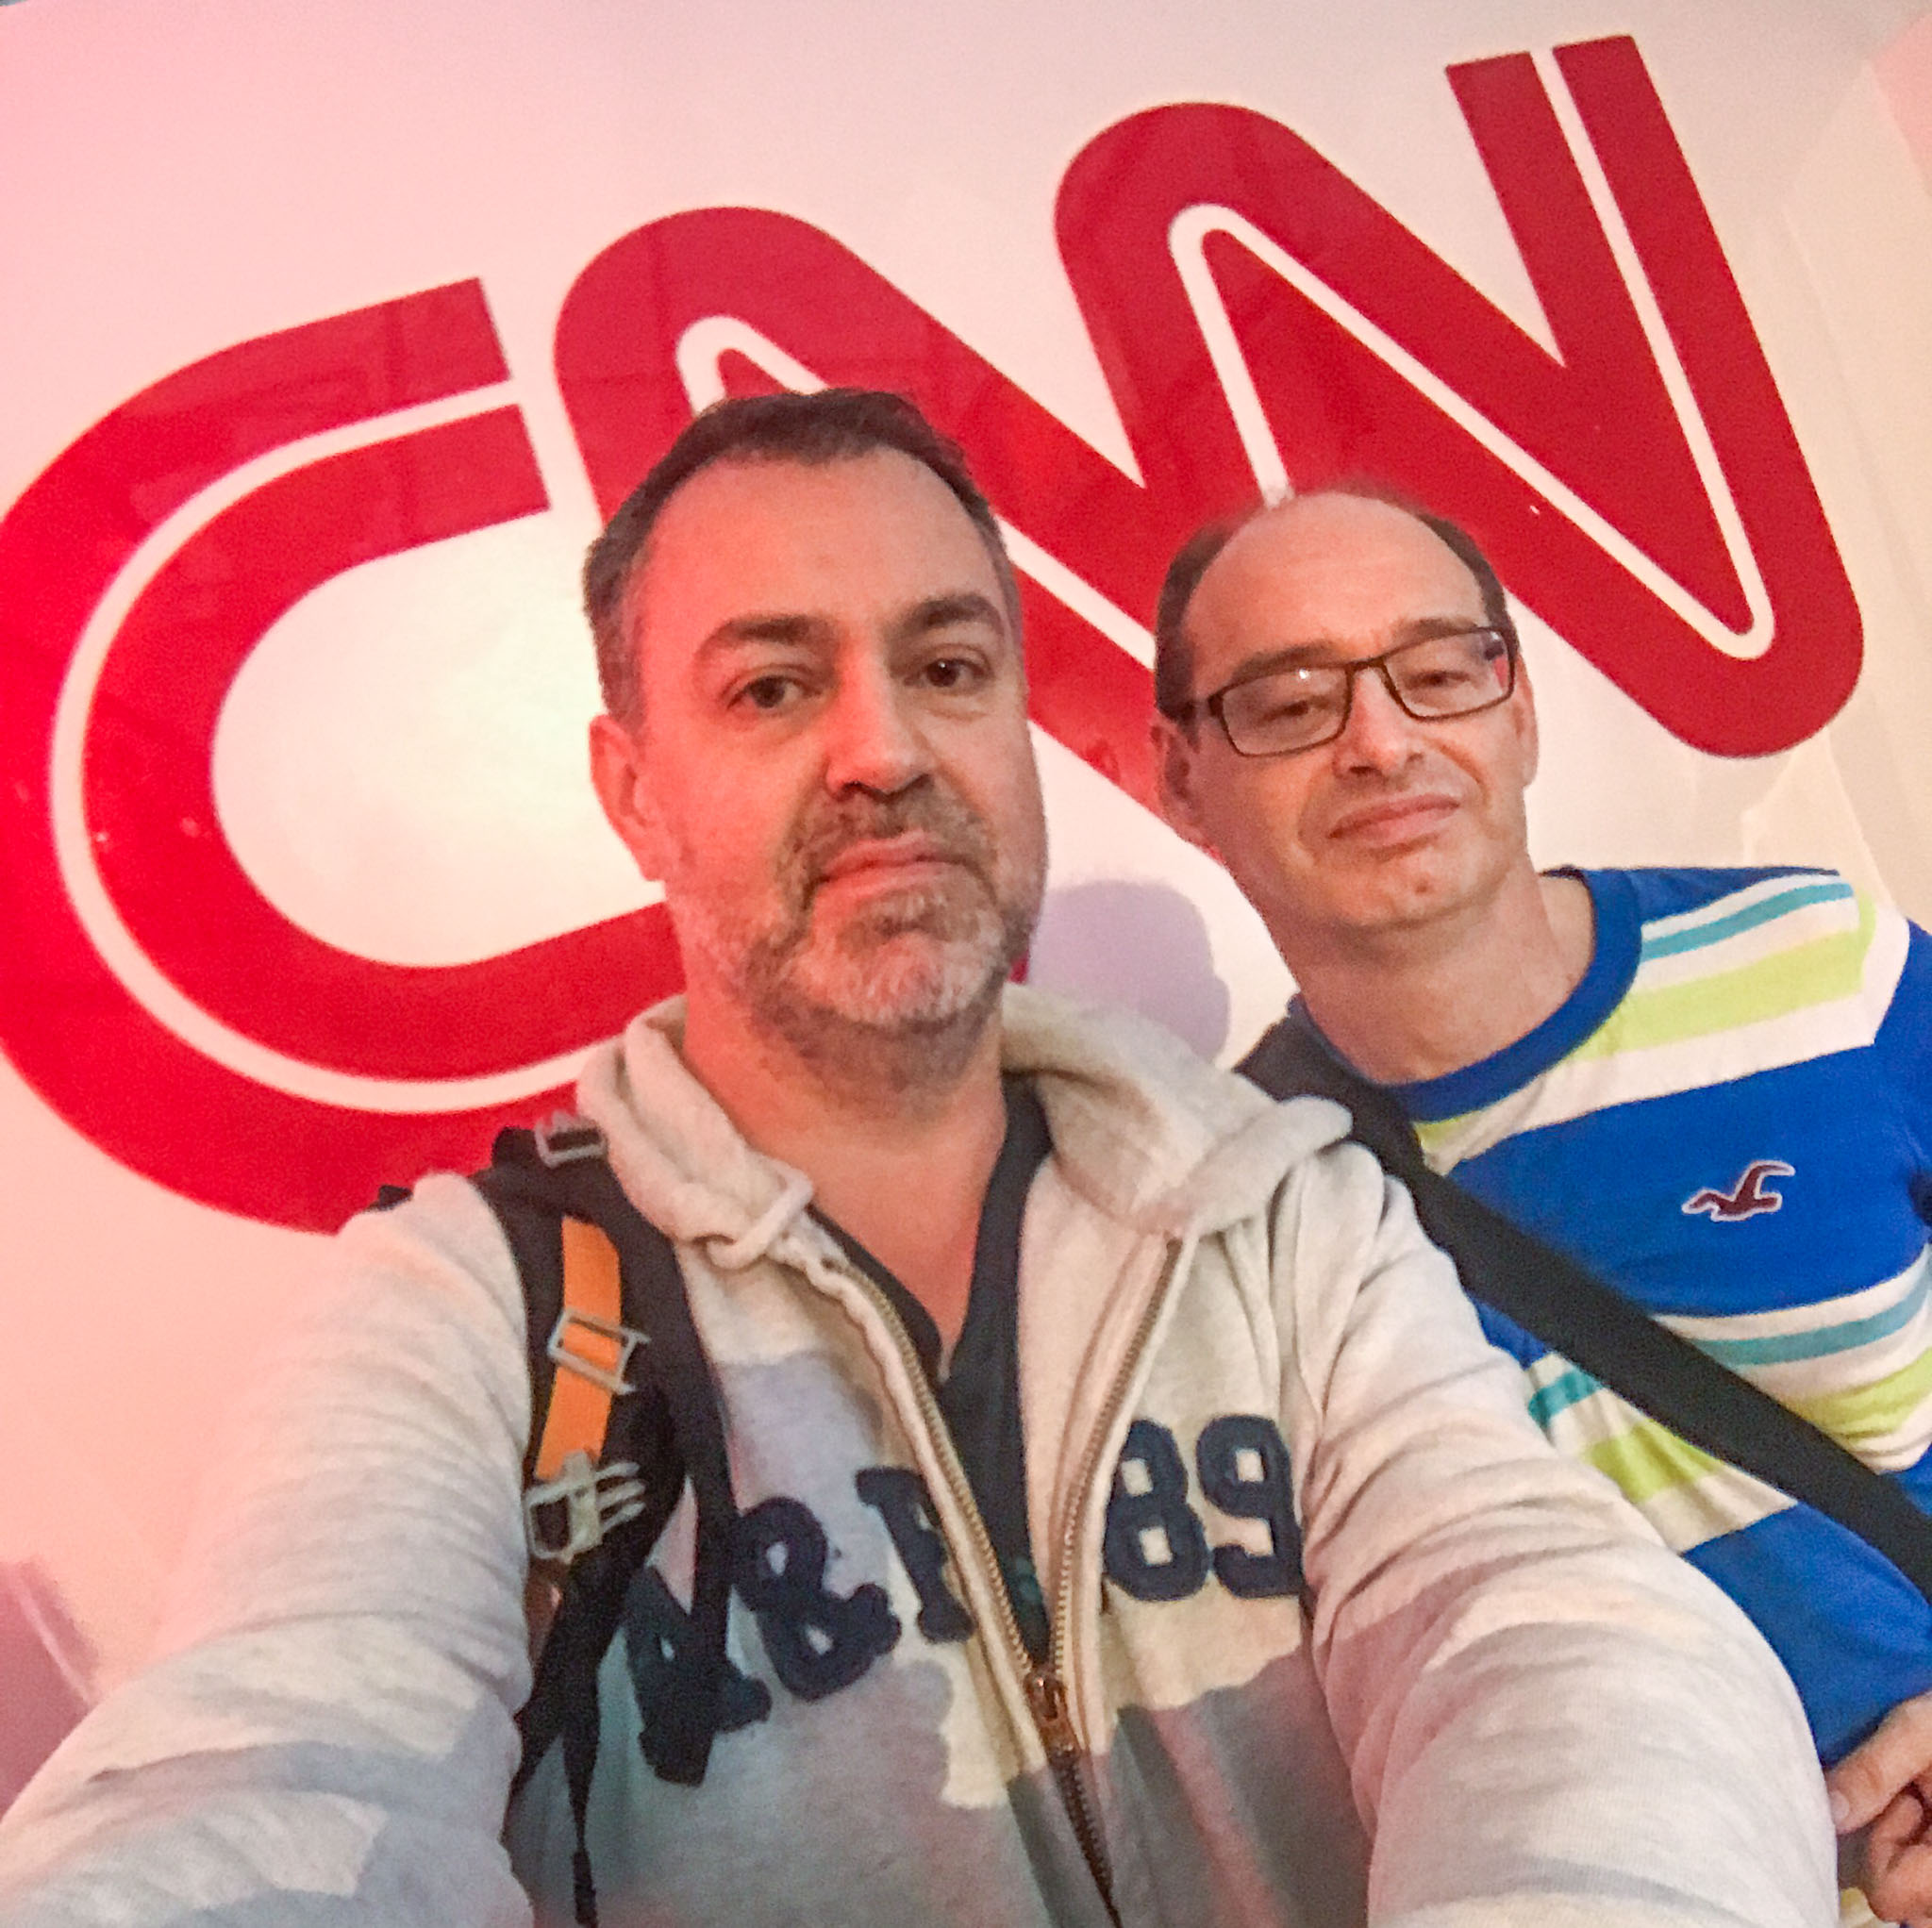 Selfie at the CNN Newsroom in Atlanta, GA